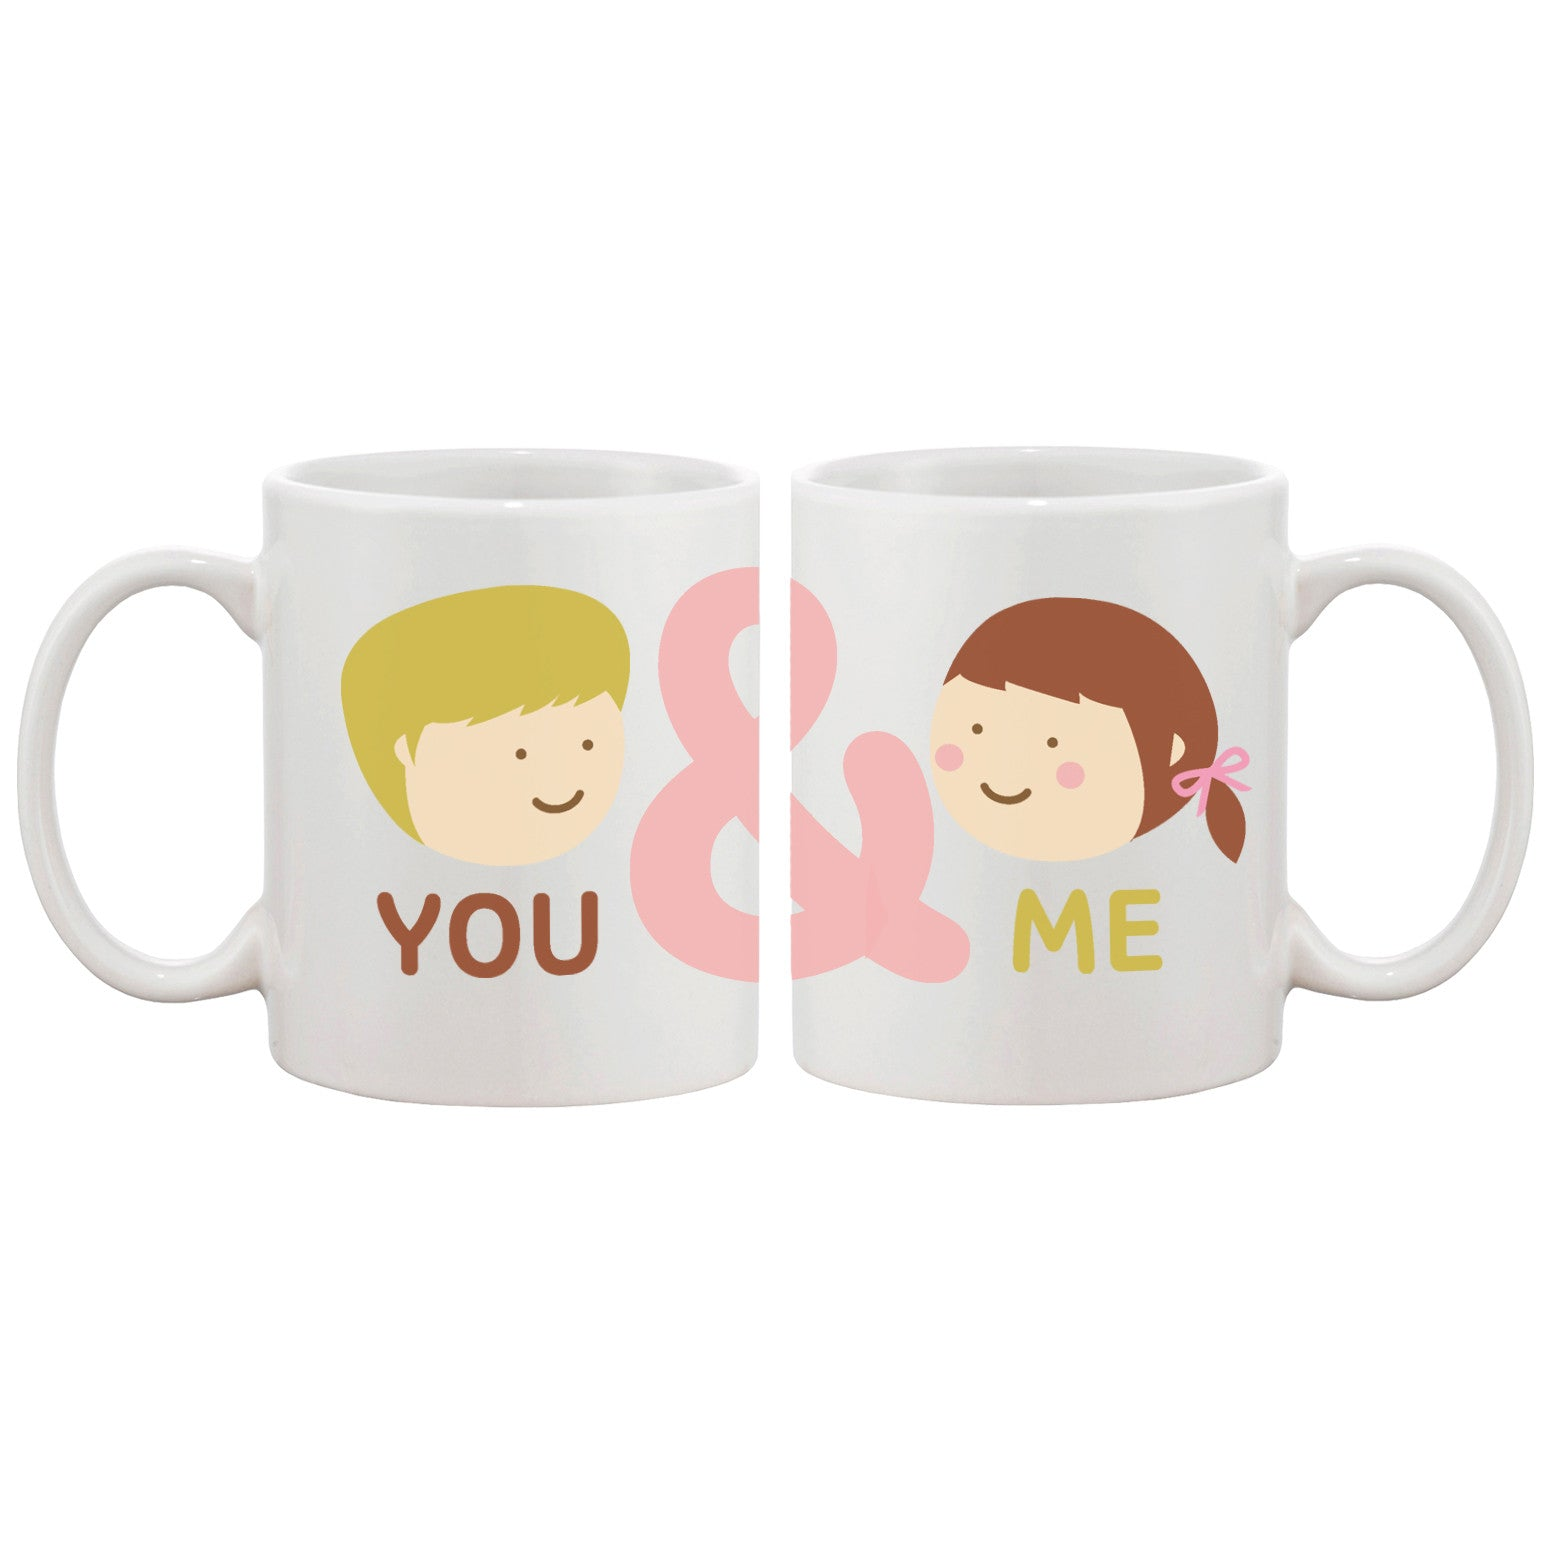 you and me matching couple mugs cute graphic design ceramic coffee